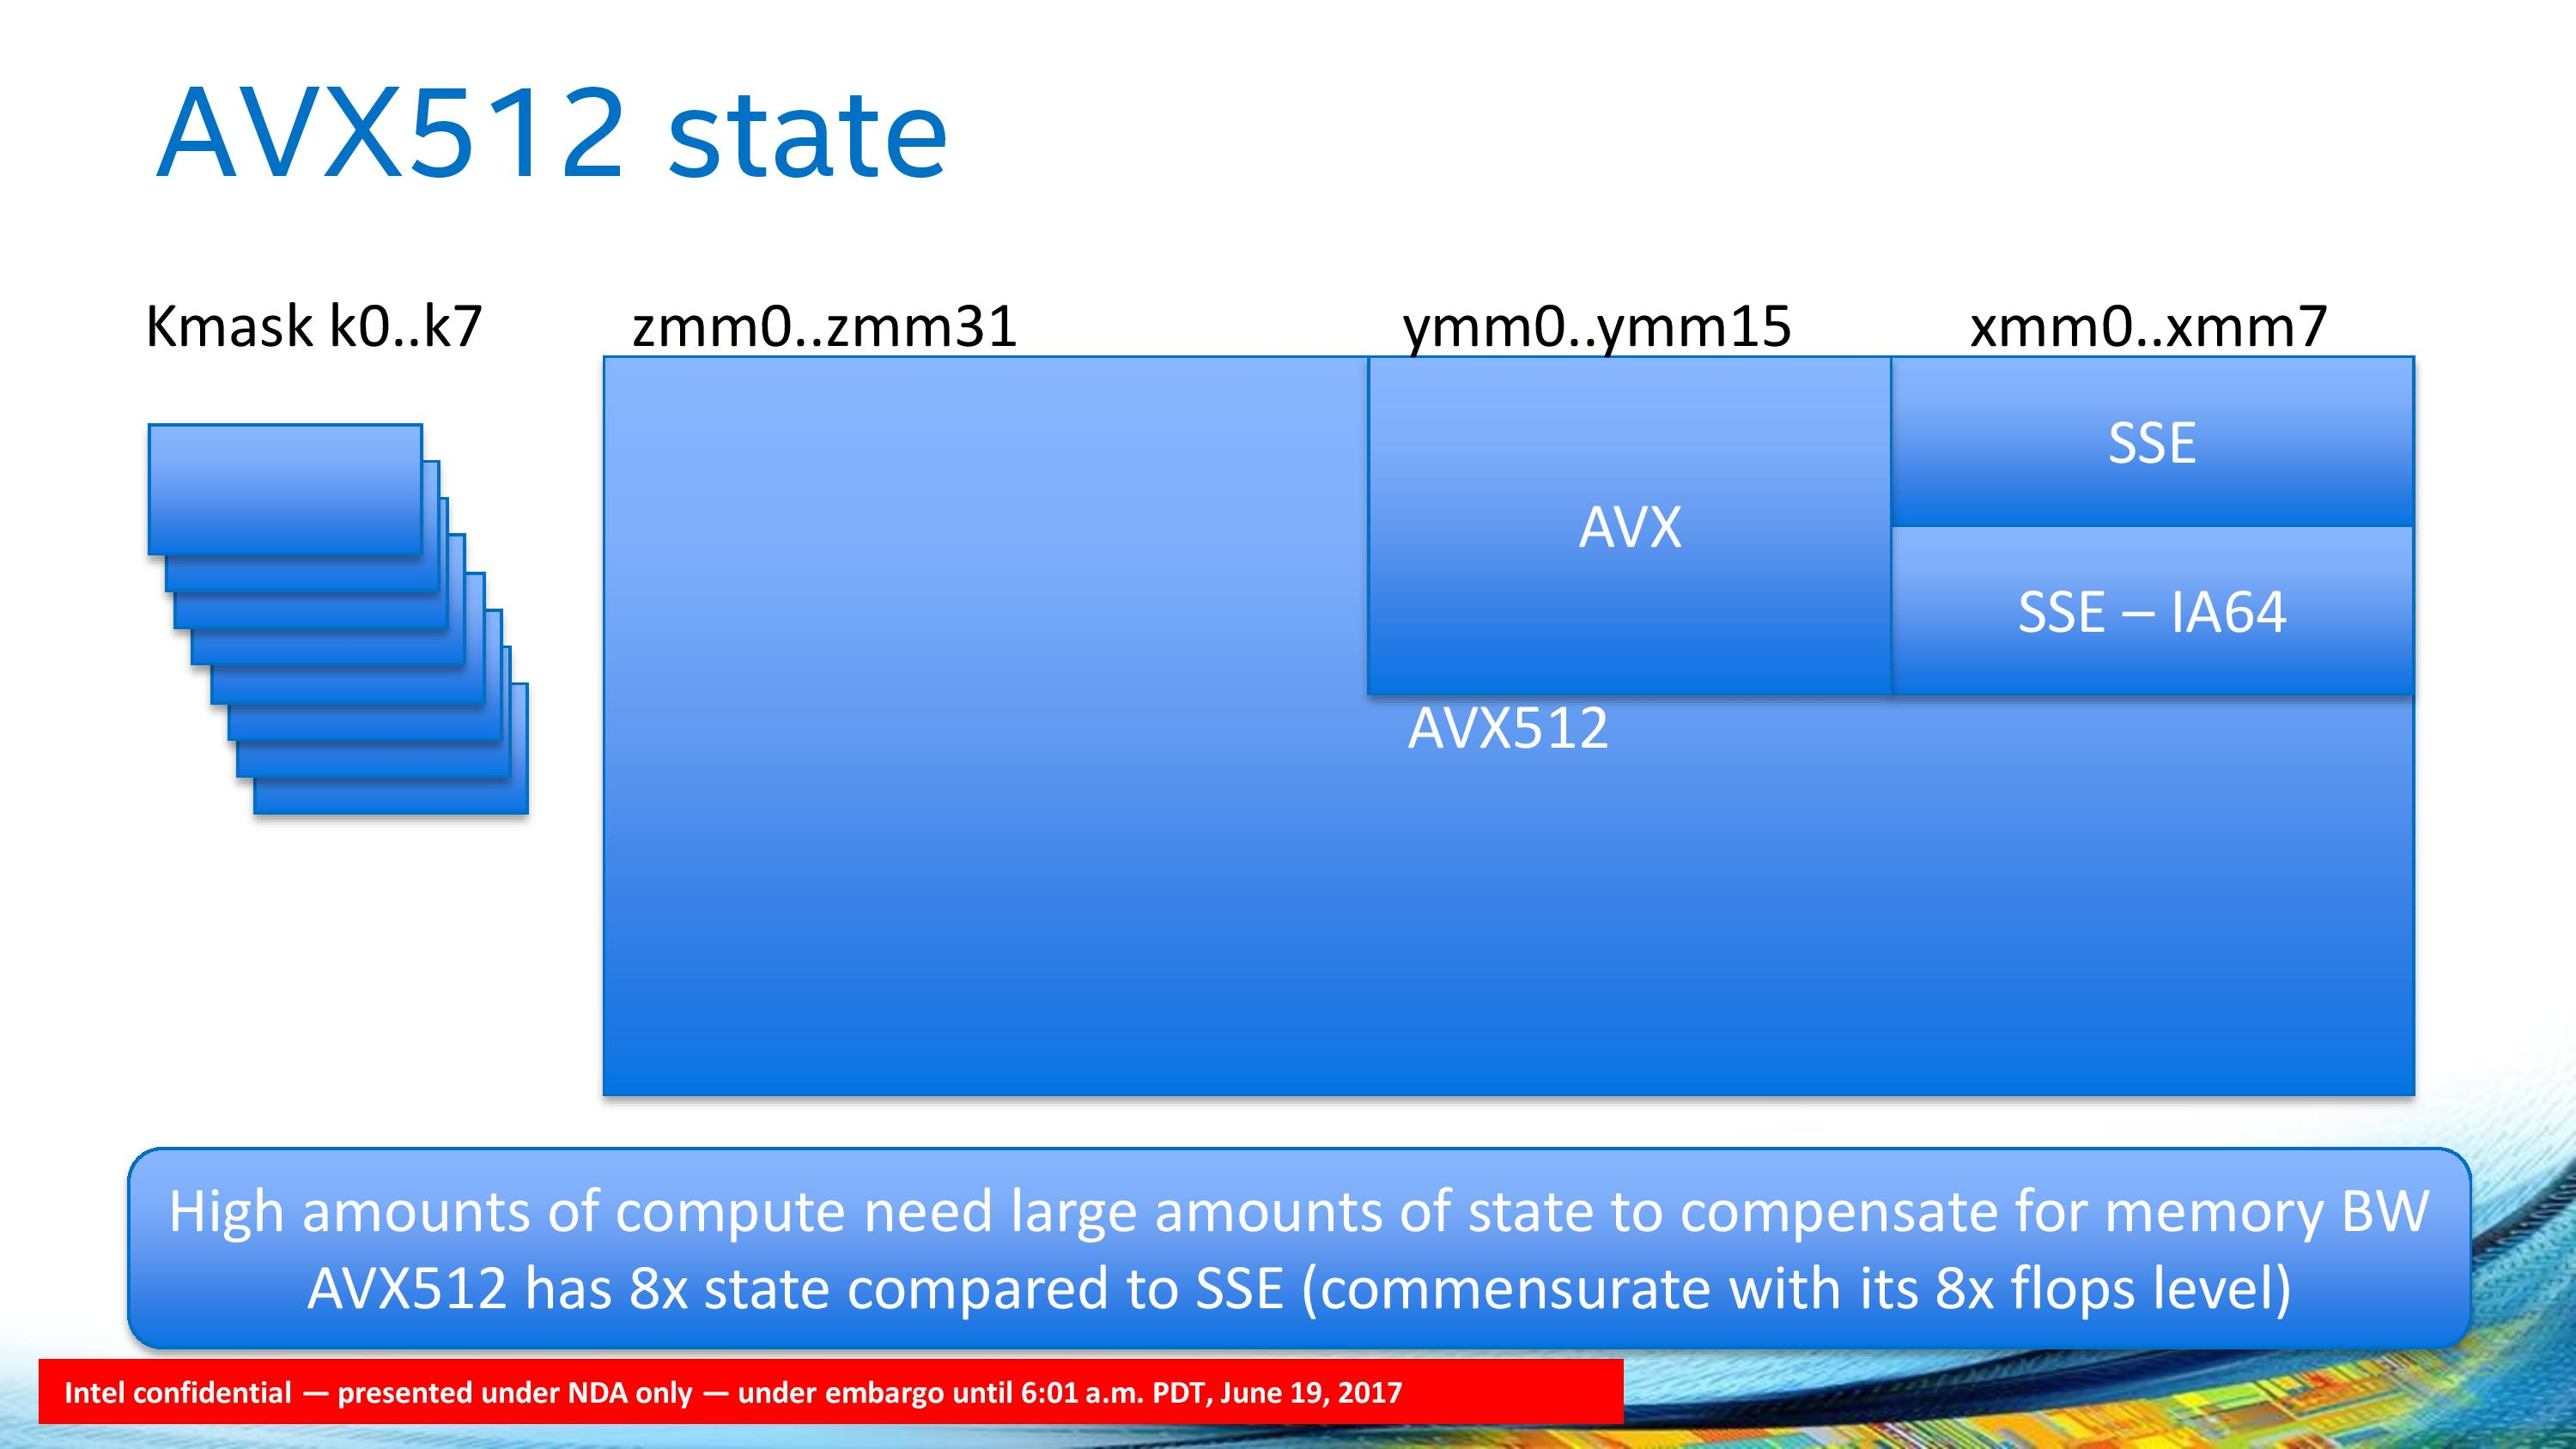 Microarchitecture Analysis: Adding in AVX-512 and Tweaks to